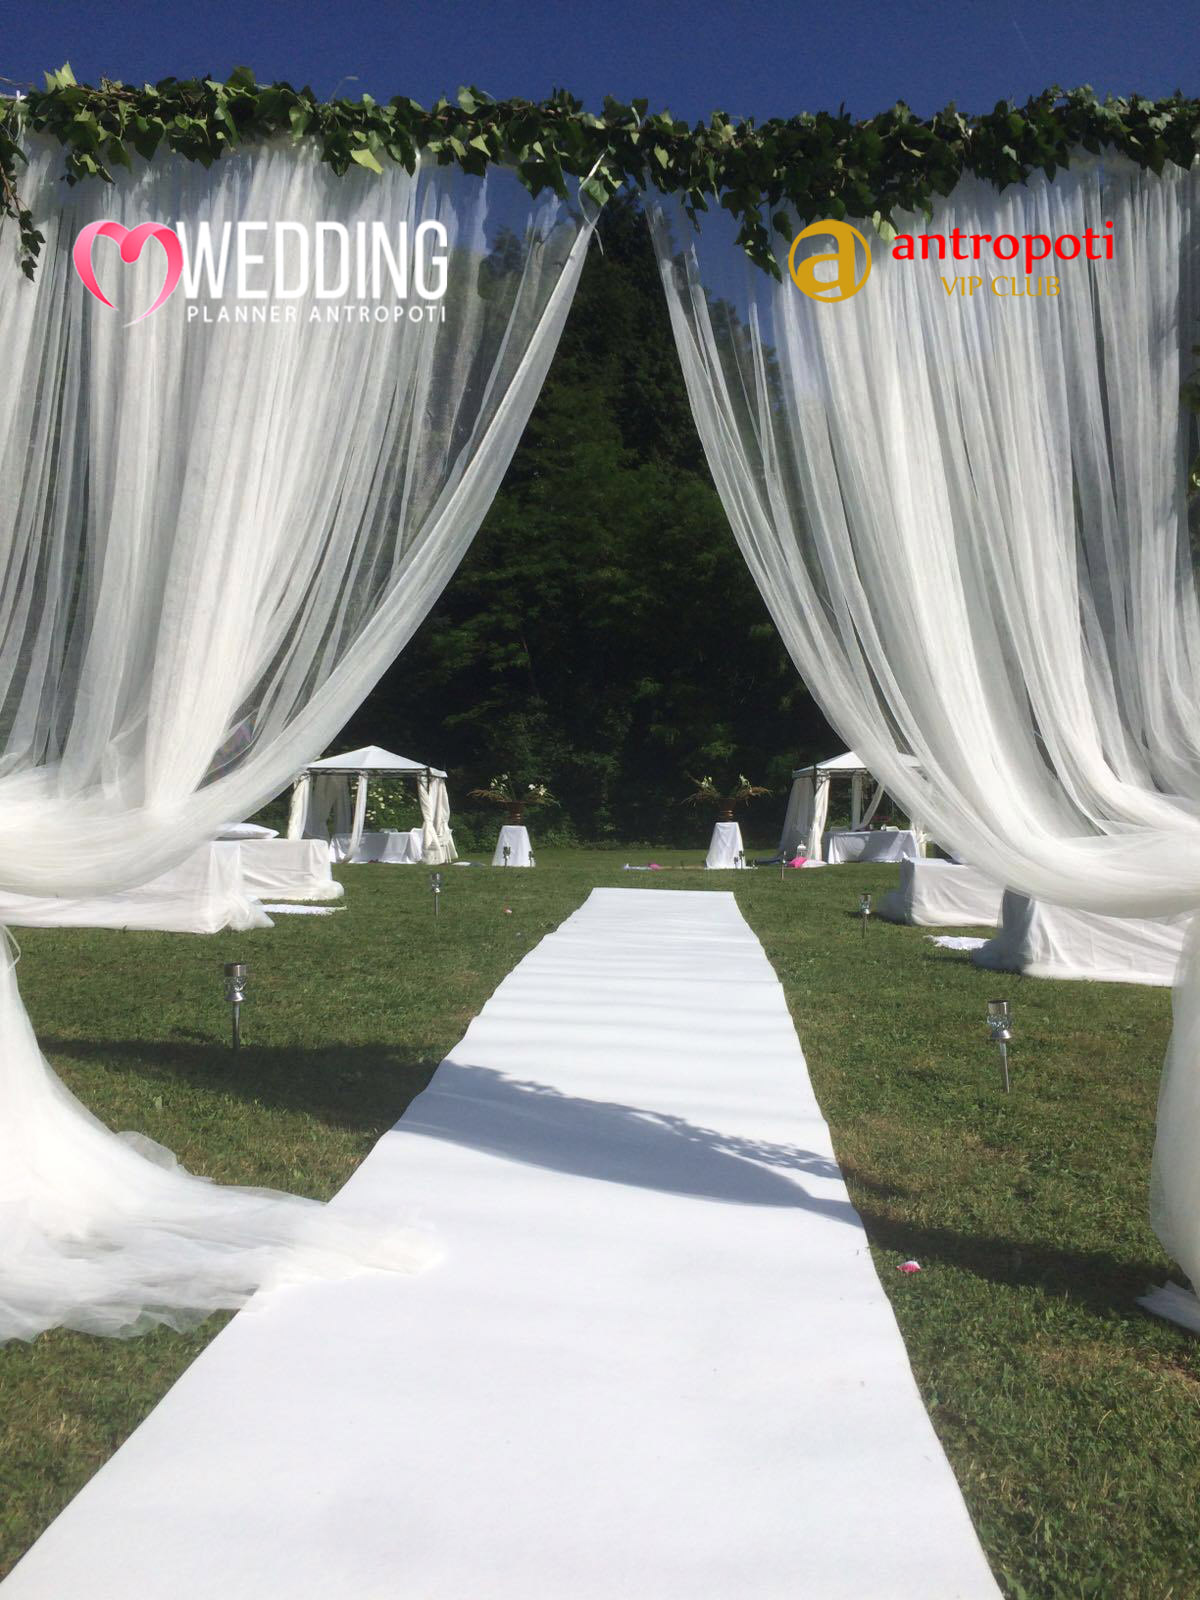 weddings_in_croatia_wedding_planner_croatia_wedding_concierge_antropoti_symbolic_wedding_civil_wedding_outdoor_wedding_3